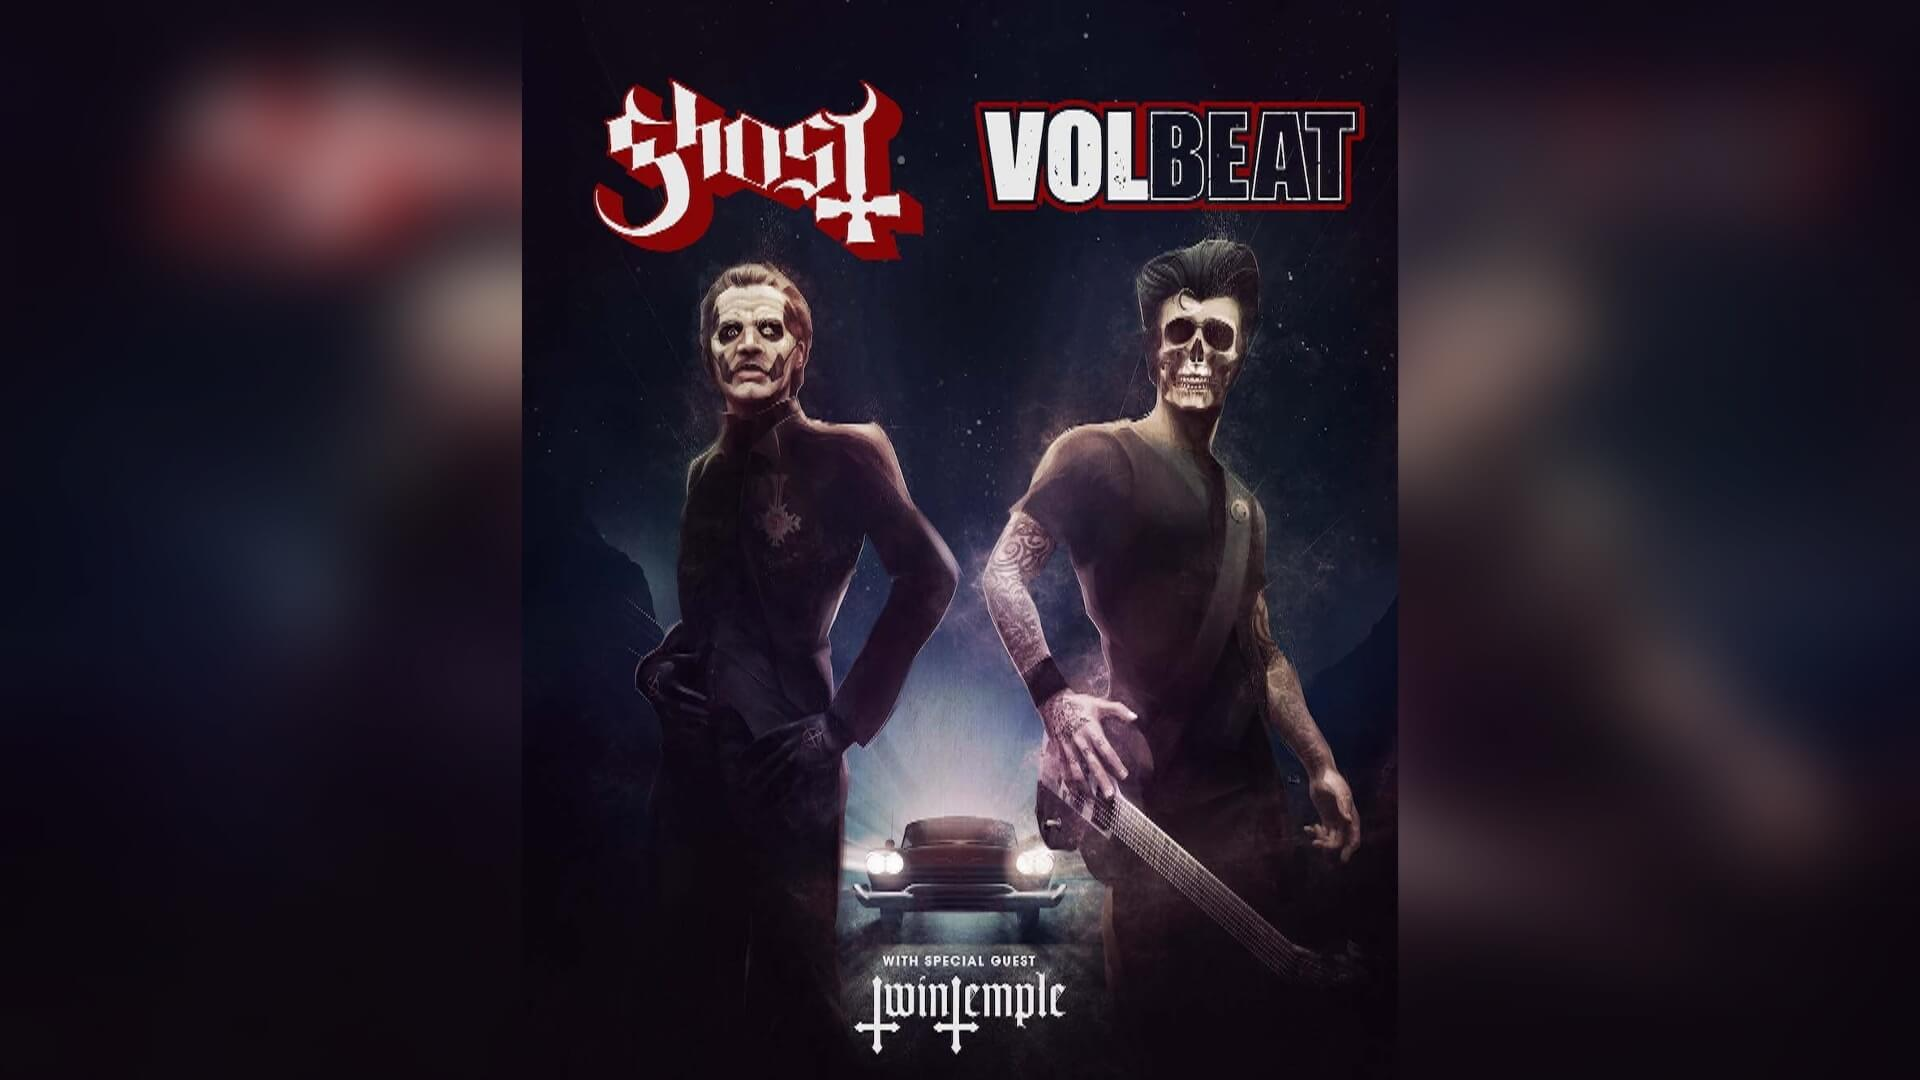 Ghost Announces U.S. Co-Headlining Tour With Volbeat